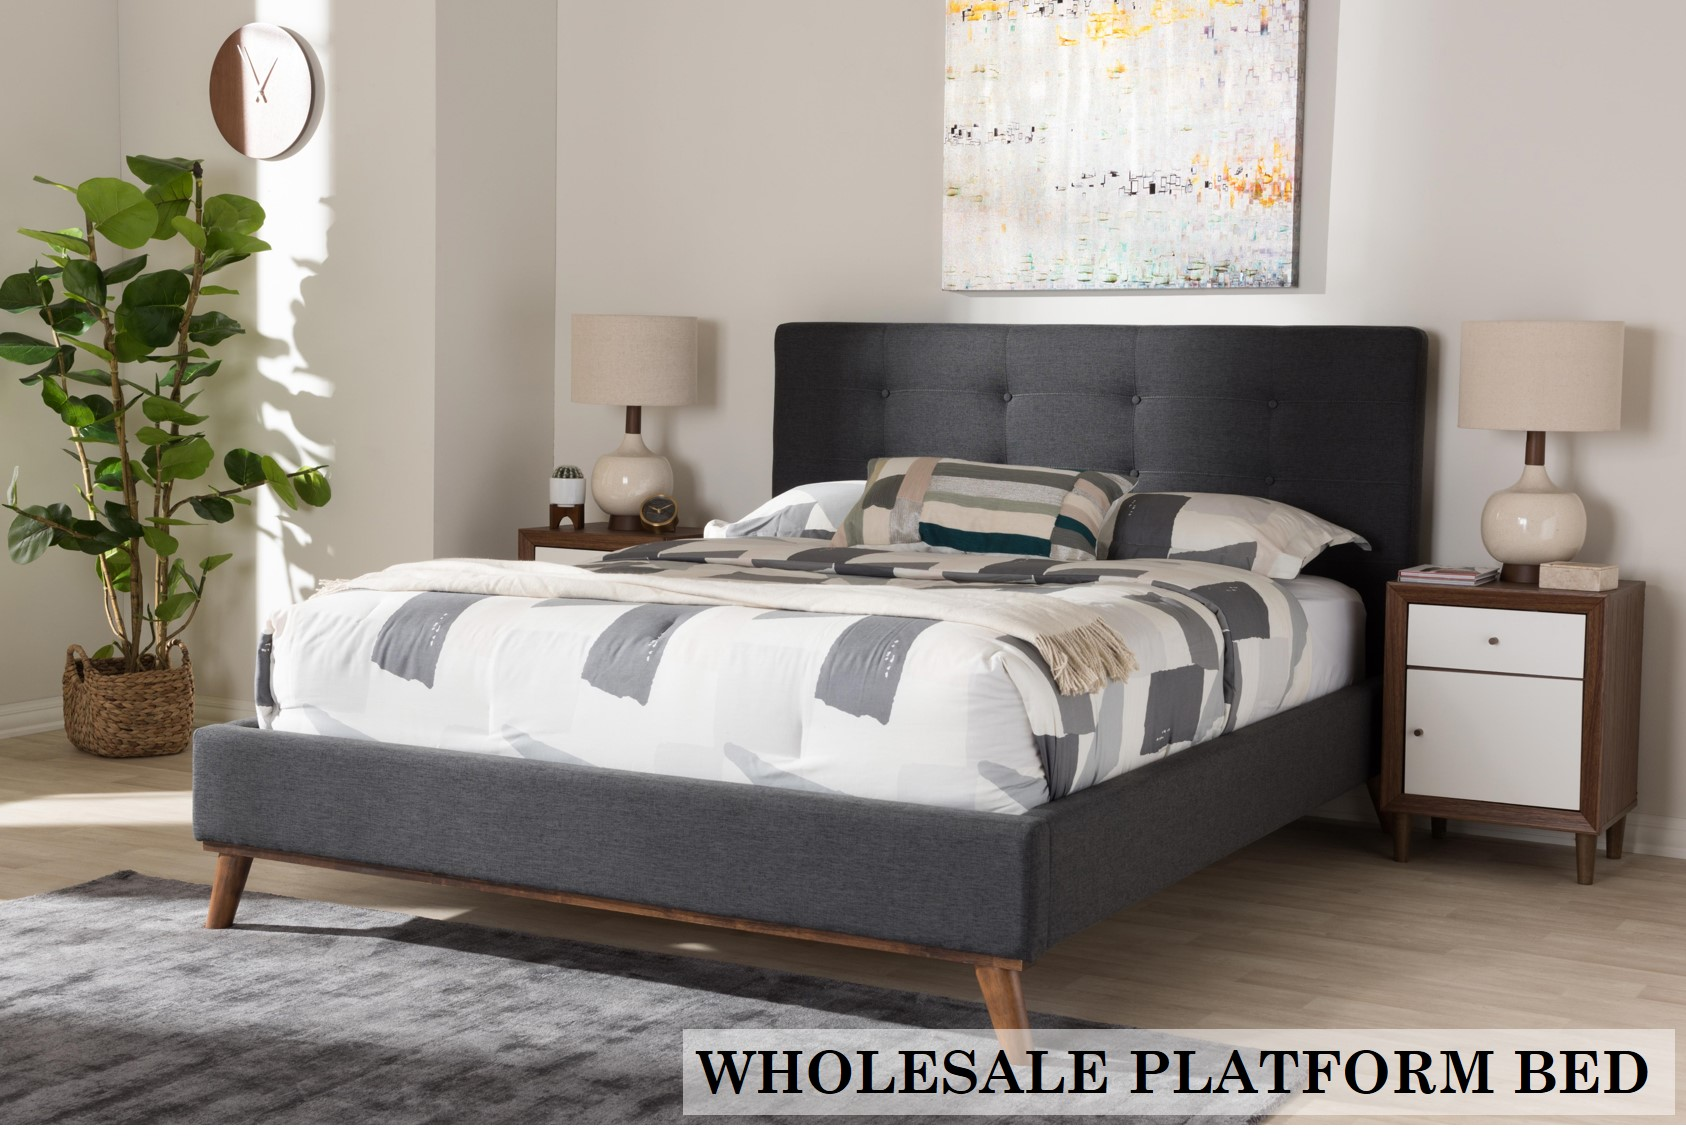 Access To Wholesale Interiors Is Available Only To Trade Companies And  Individuals. Verification Of Your Reselleru0027s Certificate Will Be Required  To Activate ...